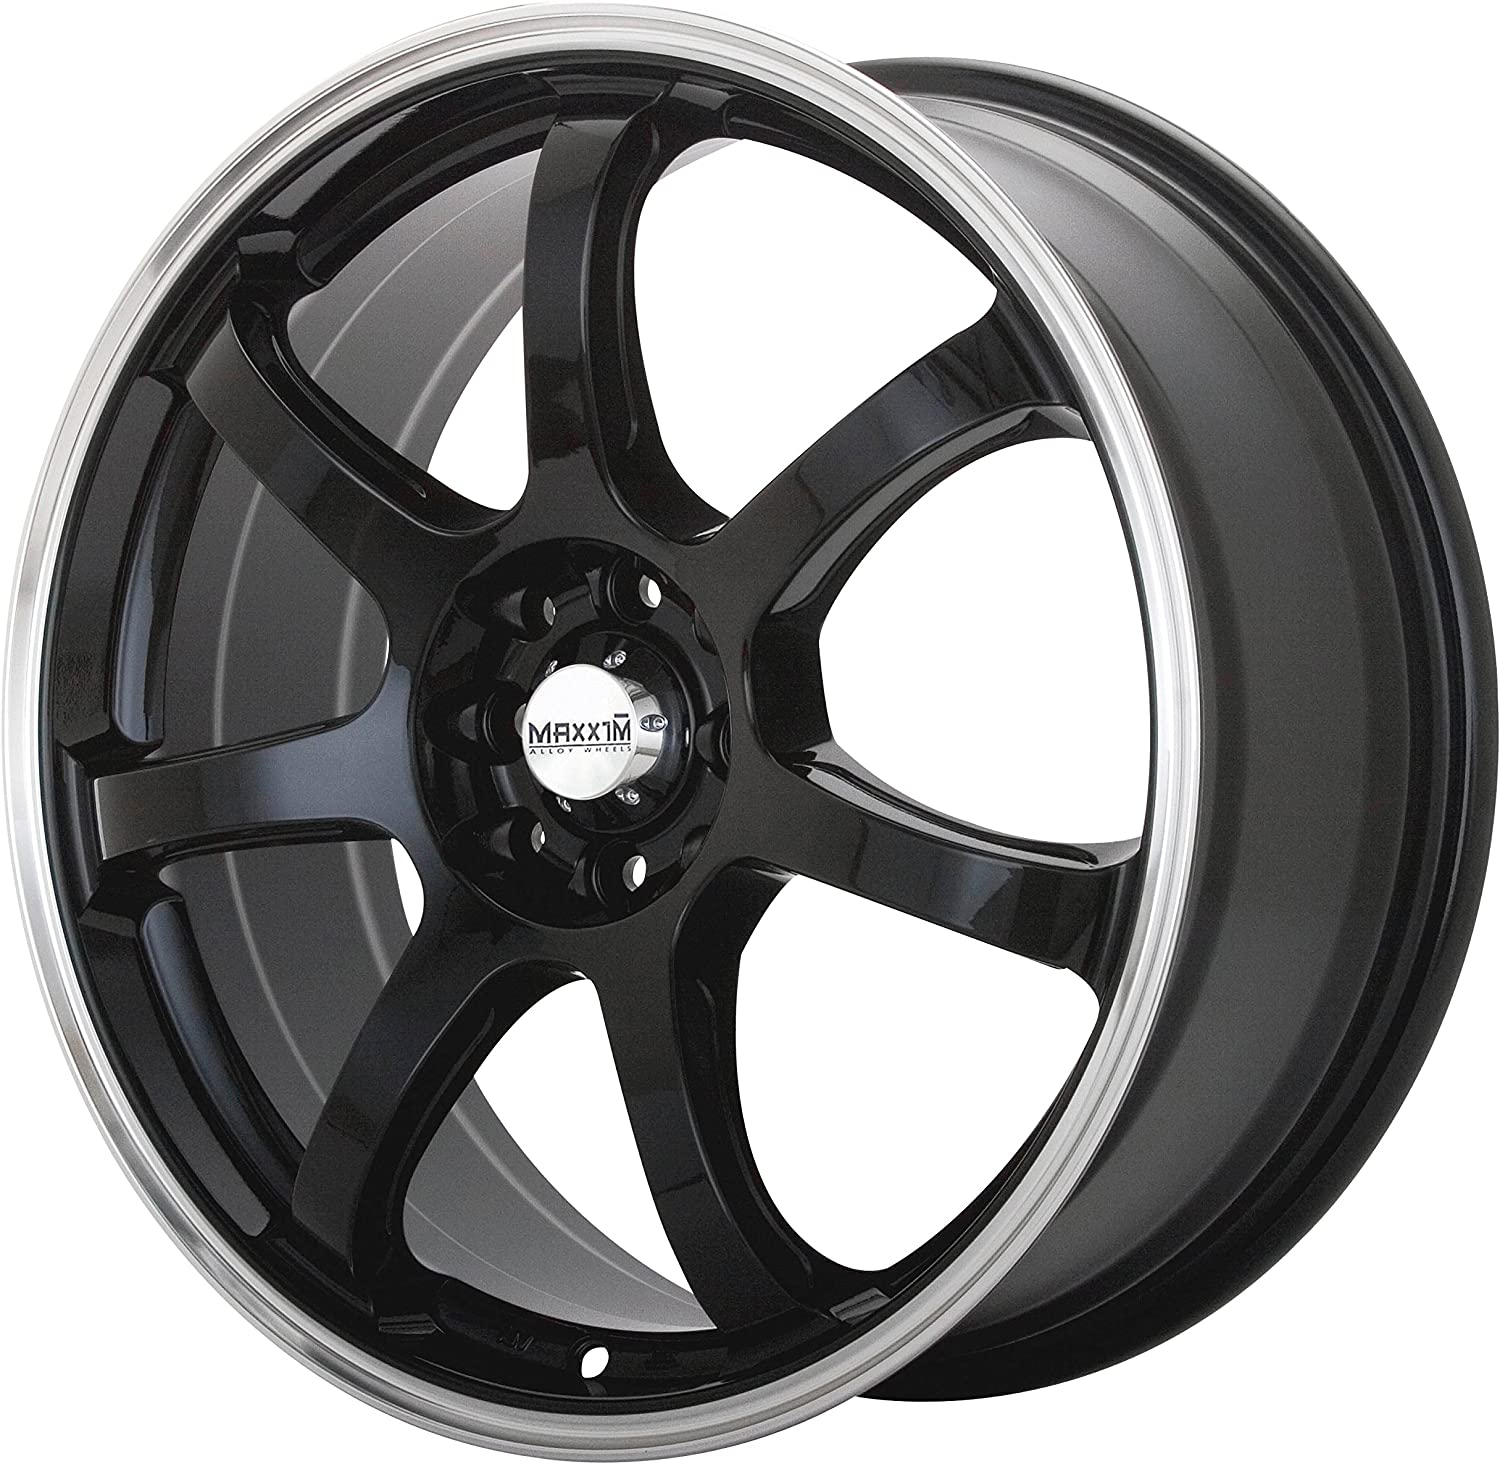 15x6.5//4x114.3mm Maxxim Knight Gloss Black Wheel